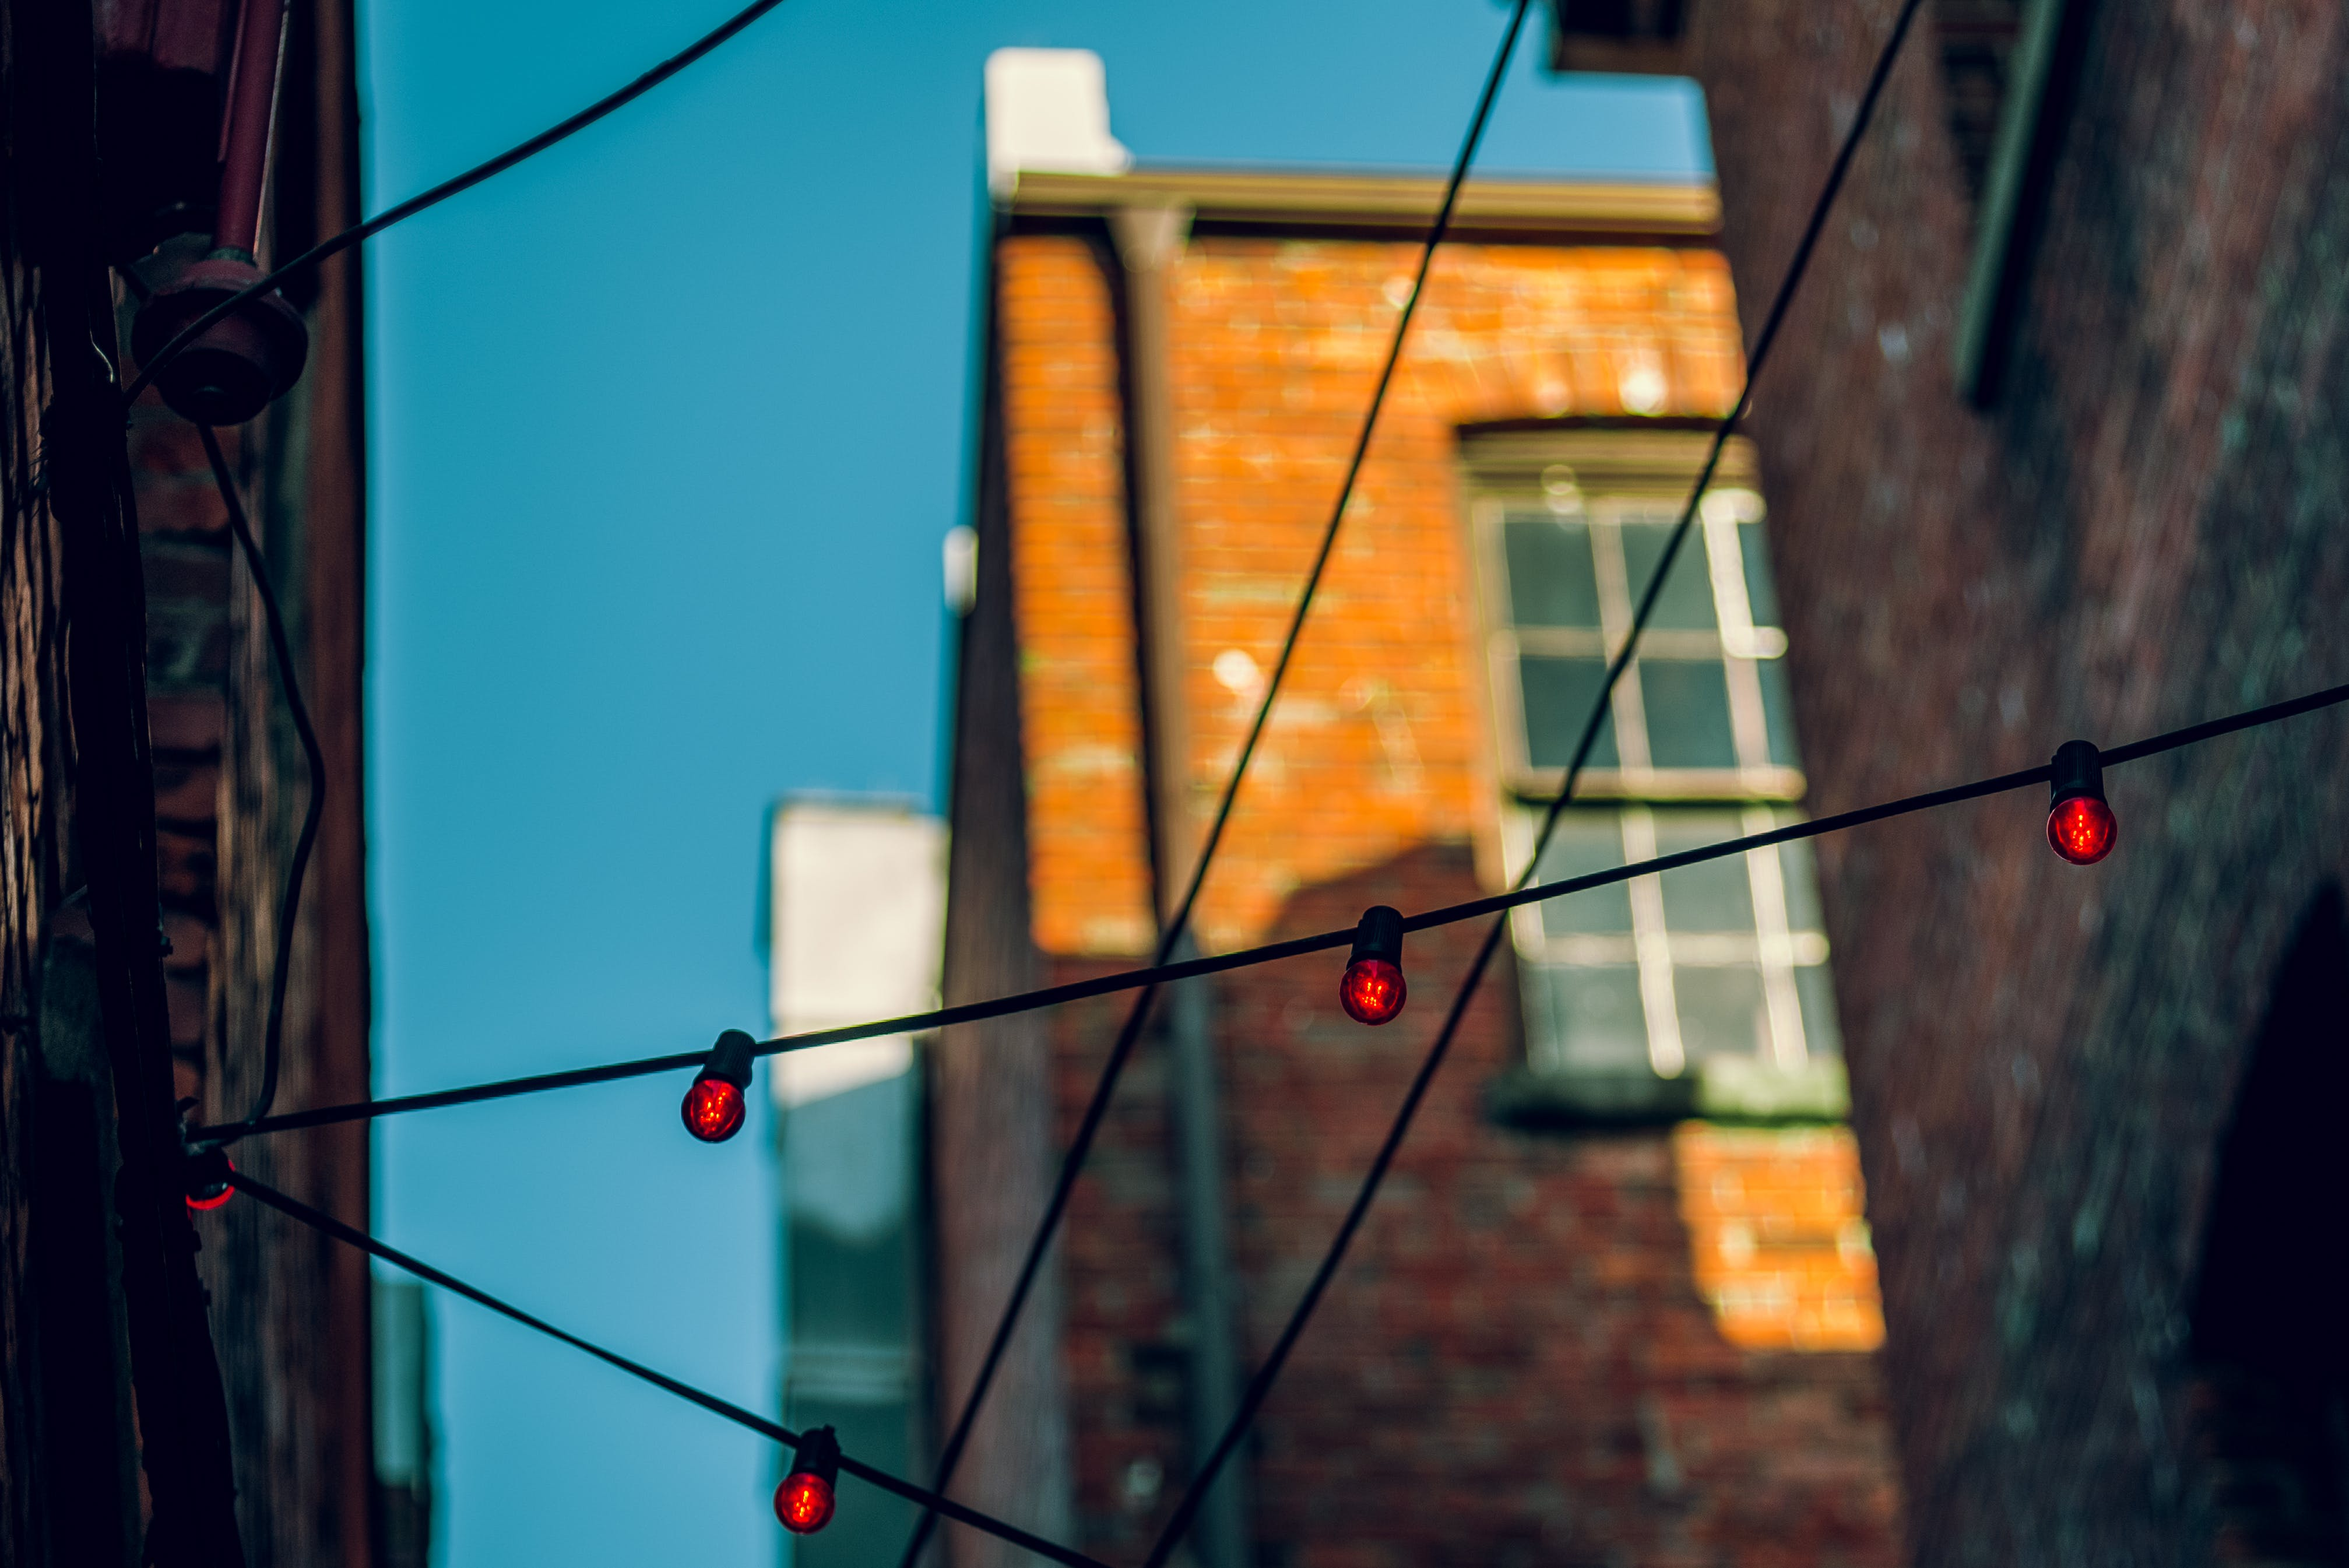 Free stock photo of architecture, blur, buildings, bulbs